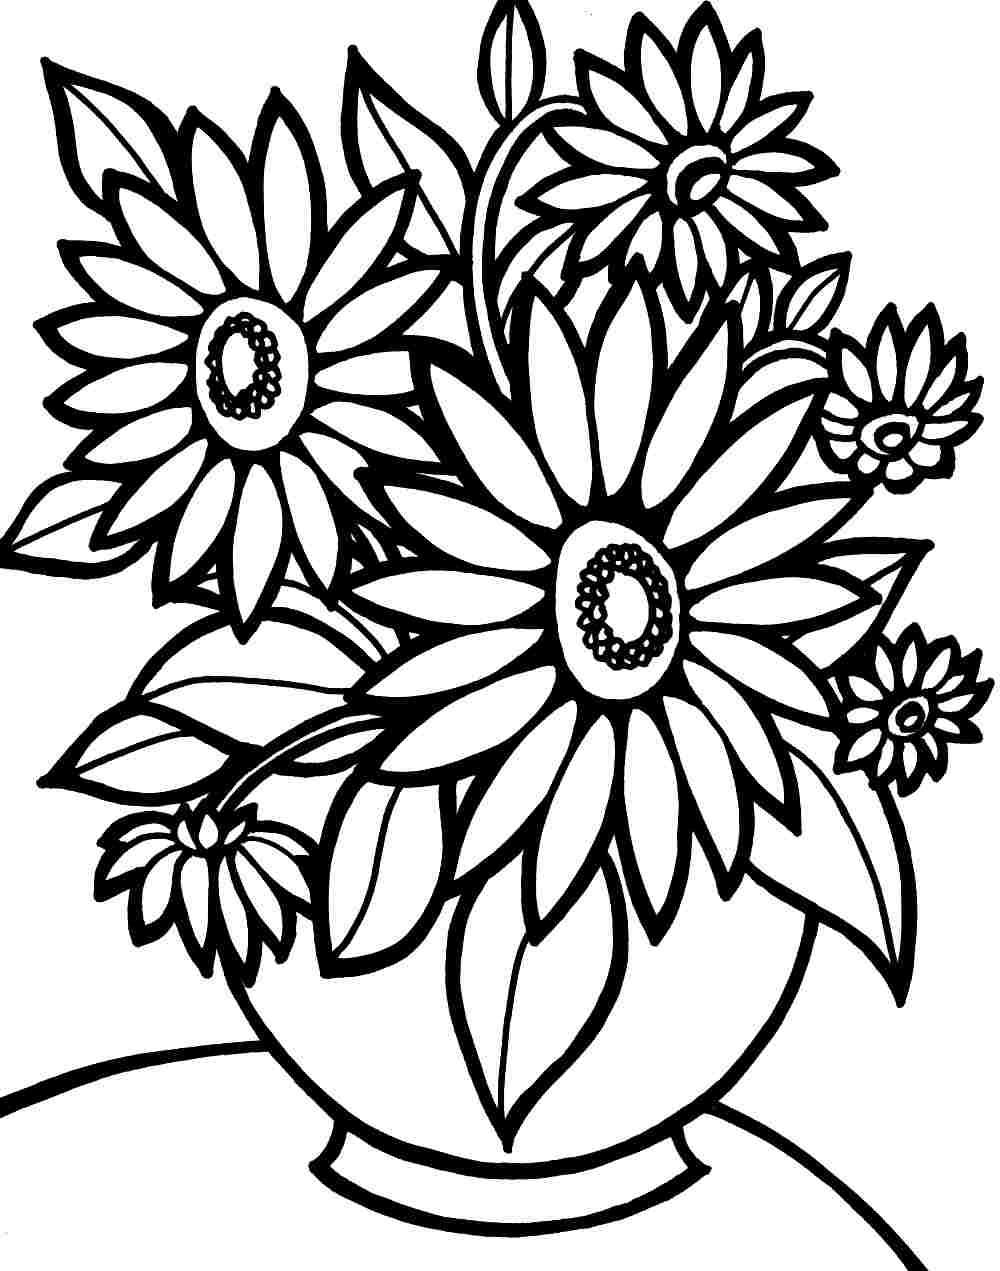 Basic Flower Coloring Pages at GetDrawings.com | Free for ...